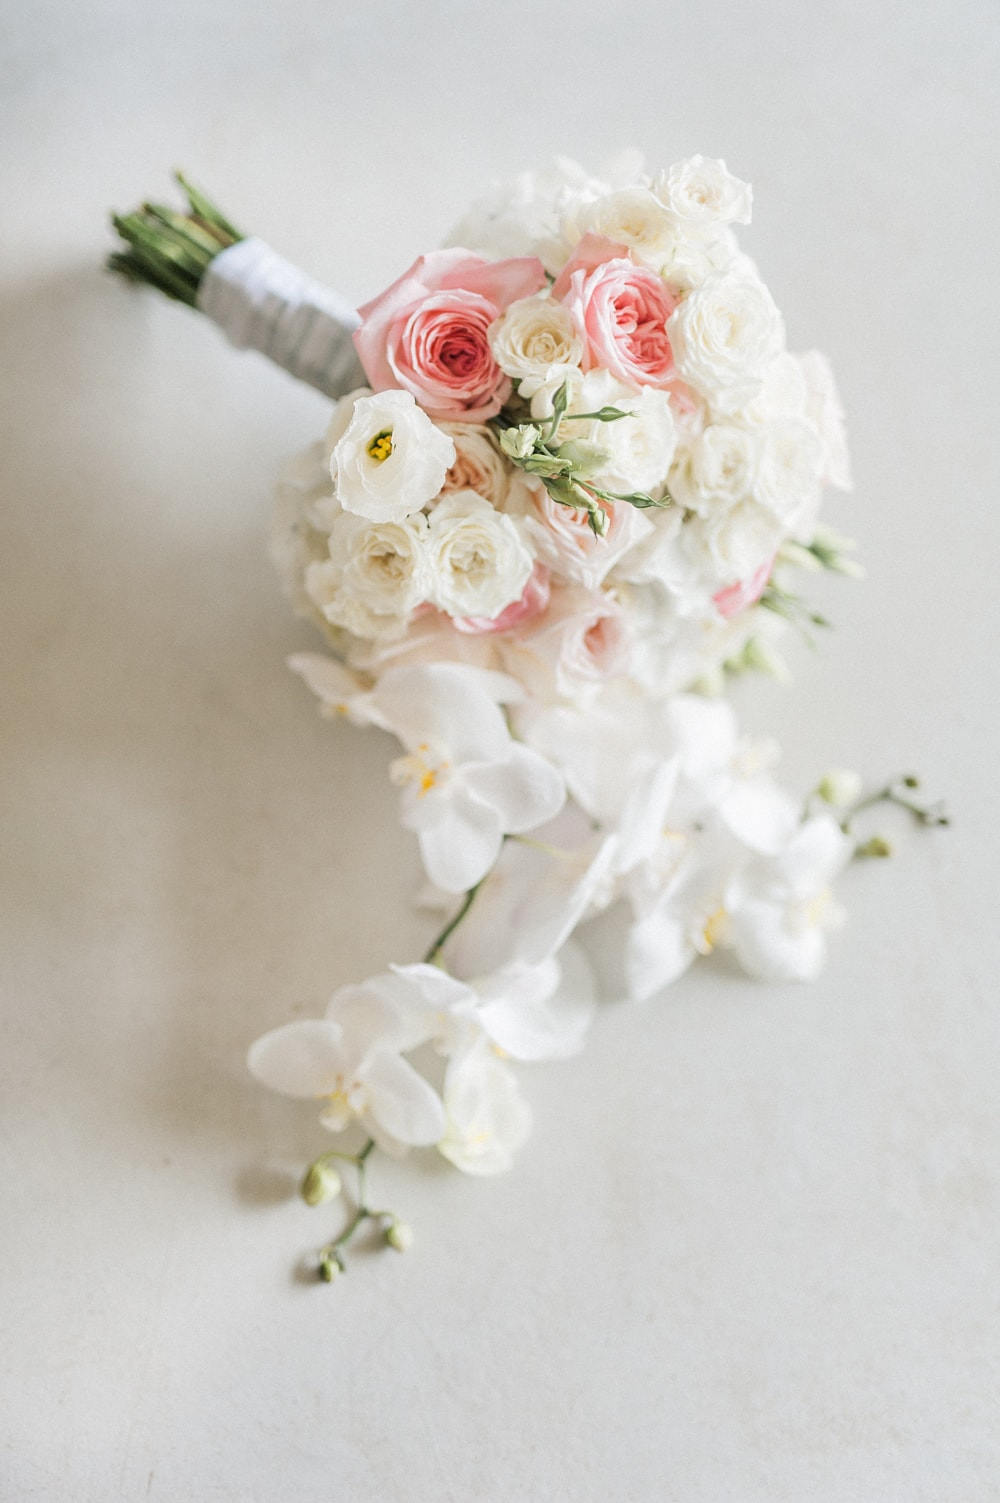 Blush & White Orchid & Rose Bouquet | Image: Bright Girl Photography